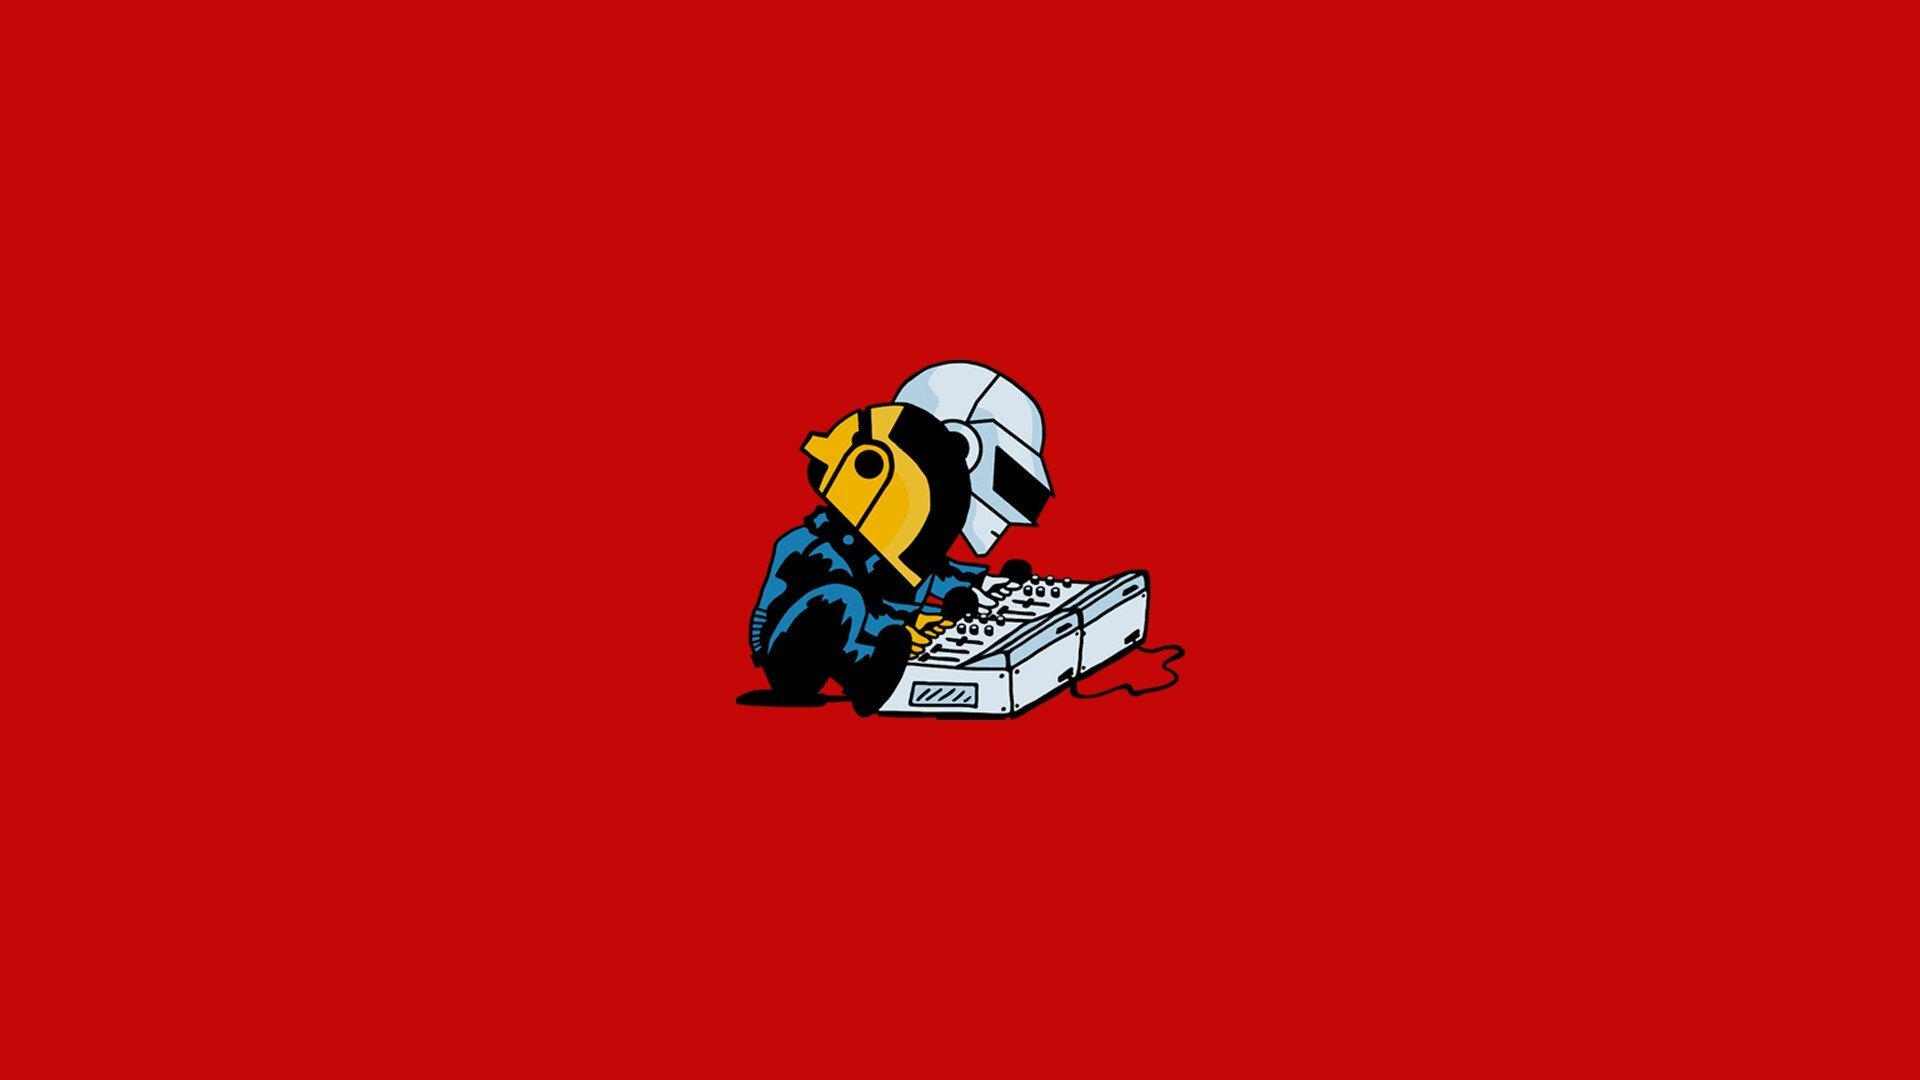 1920x1080 Daft Punk Minimalism Laptop Full HD 1080P HD 4k ...